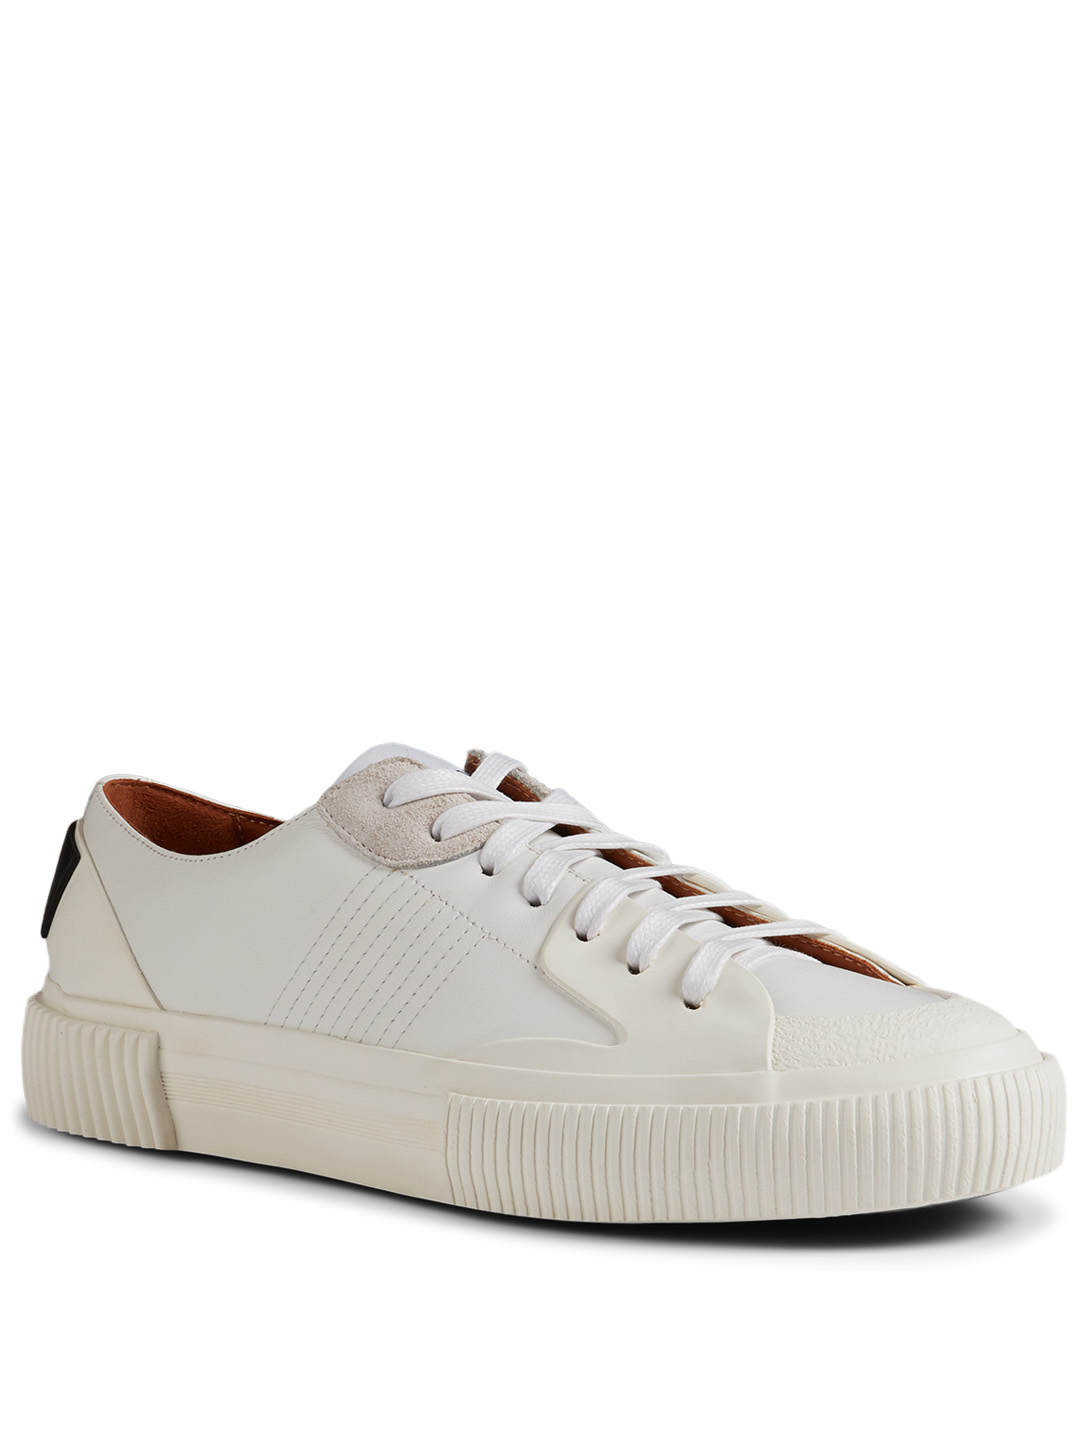 GIVENCHY Tennis Light Leather Sneakers Women's White